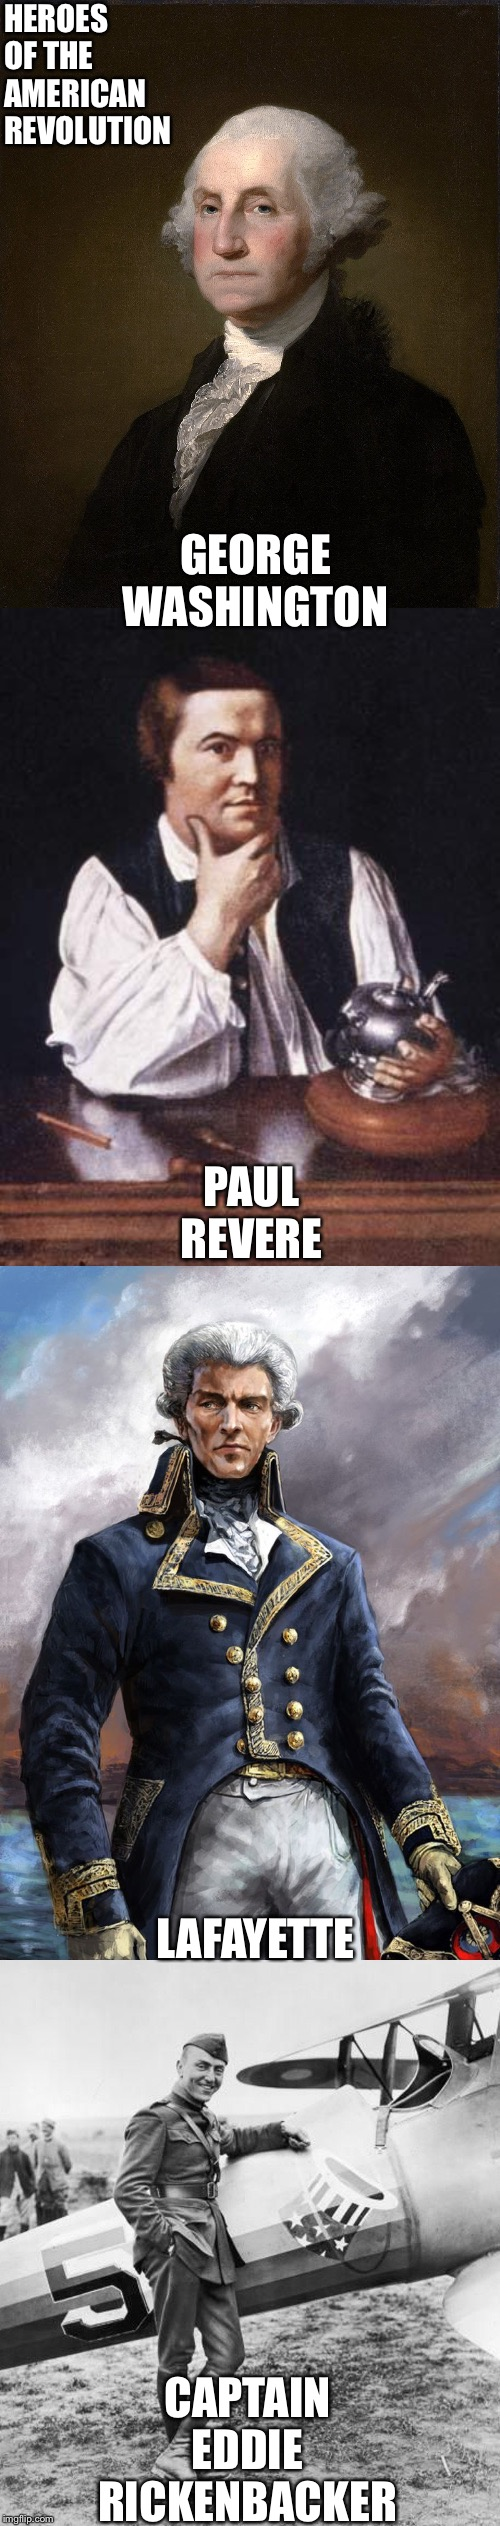 Heroes of the American Revolution | HEROES OF THE AMERICAN REVOLUTION CAPTAIN EDDIERICKENBACKER GEORGE WASHINGTON LAFAYETTE PAUL REVERE | image tagged in george washington,paul revere,lafayette | made w/ Imgflip meme maker